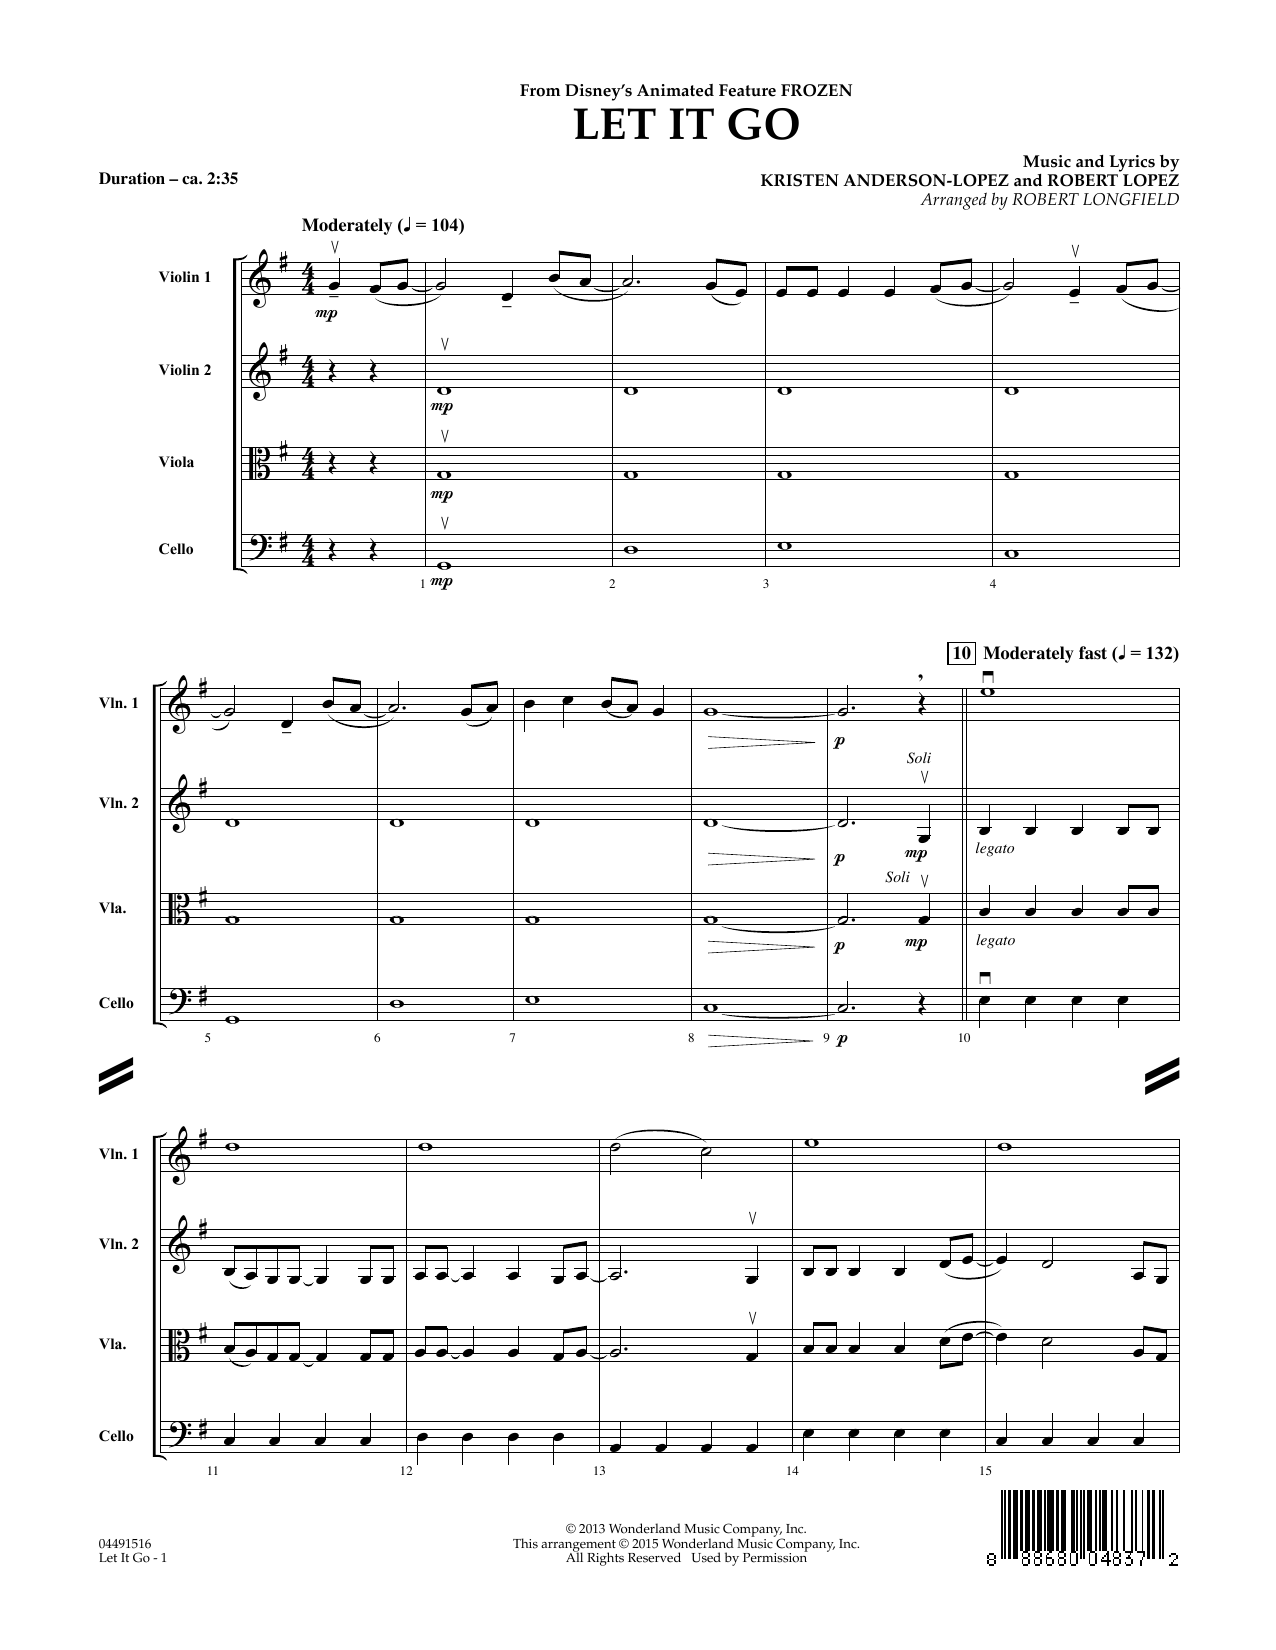 Let It Go (COMPLETE) sheet music for orchestra by Robert Longfield, Idina Menzel, Kristen Anderson-Lopez and Robert Lopez. Score Image Preview.